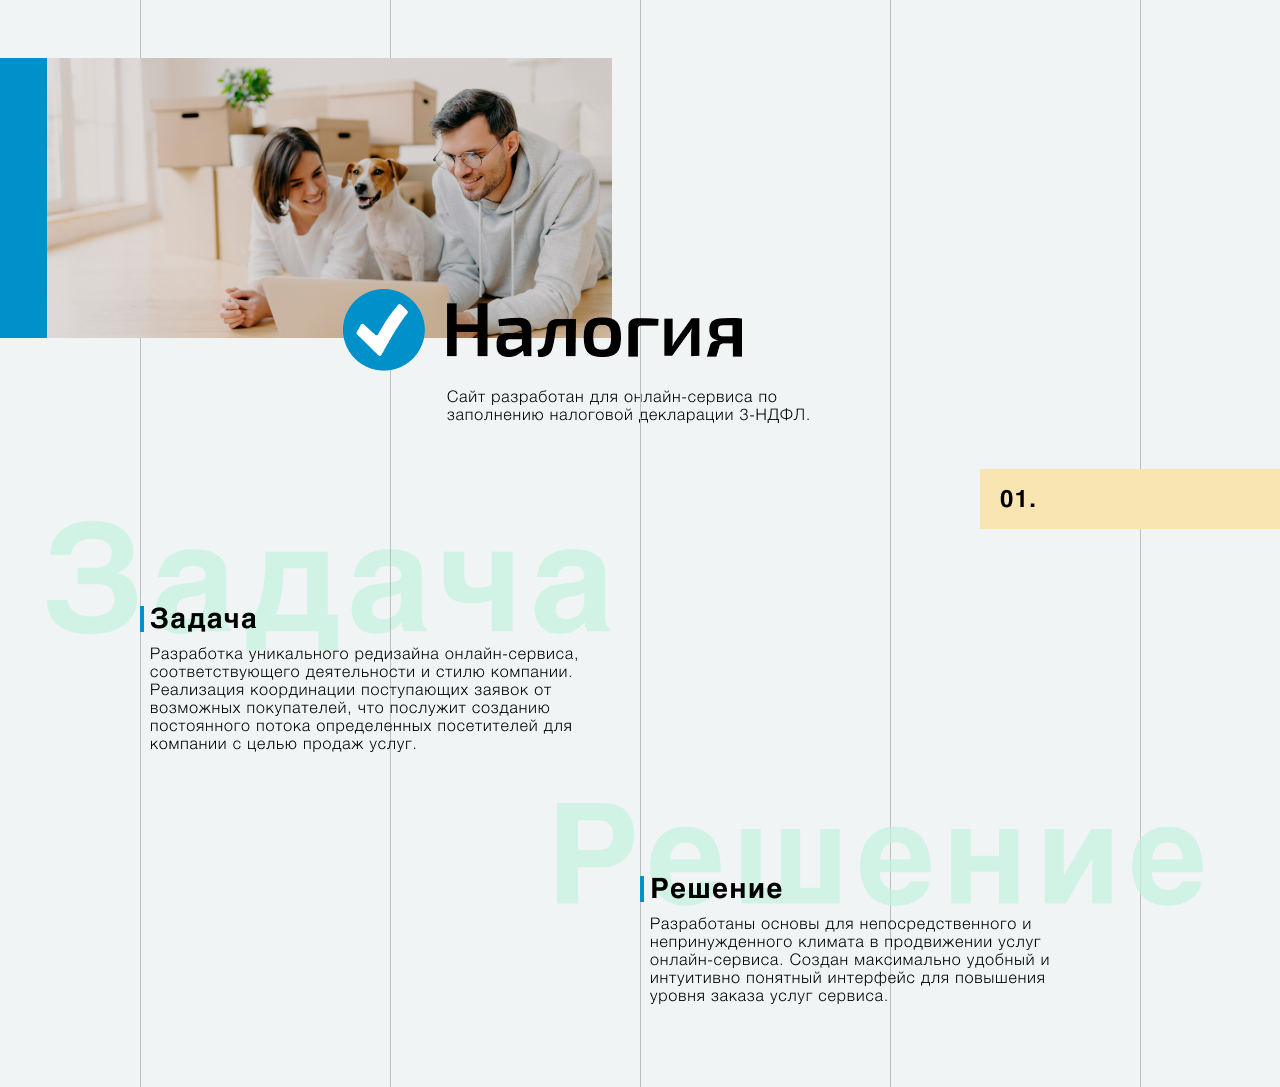 Налогия_1 © No Logo Studio